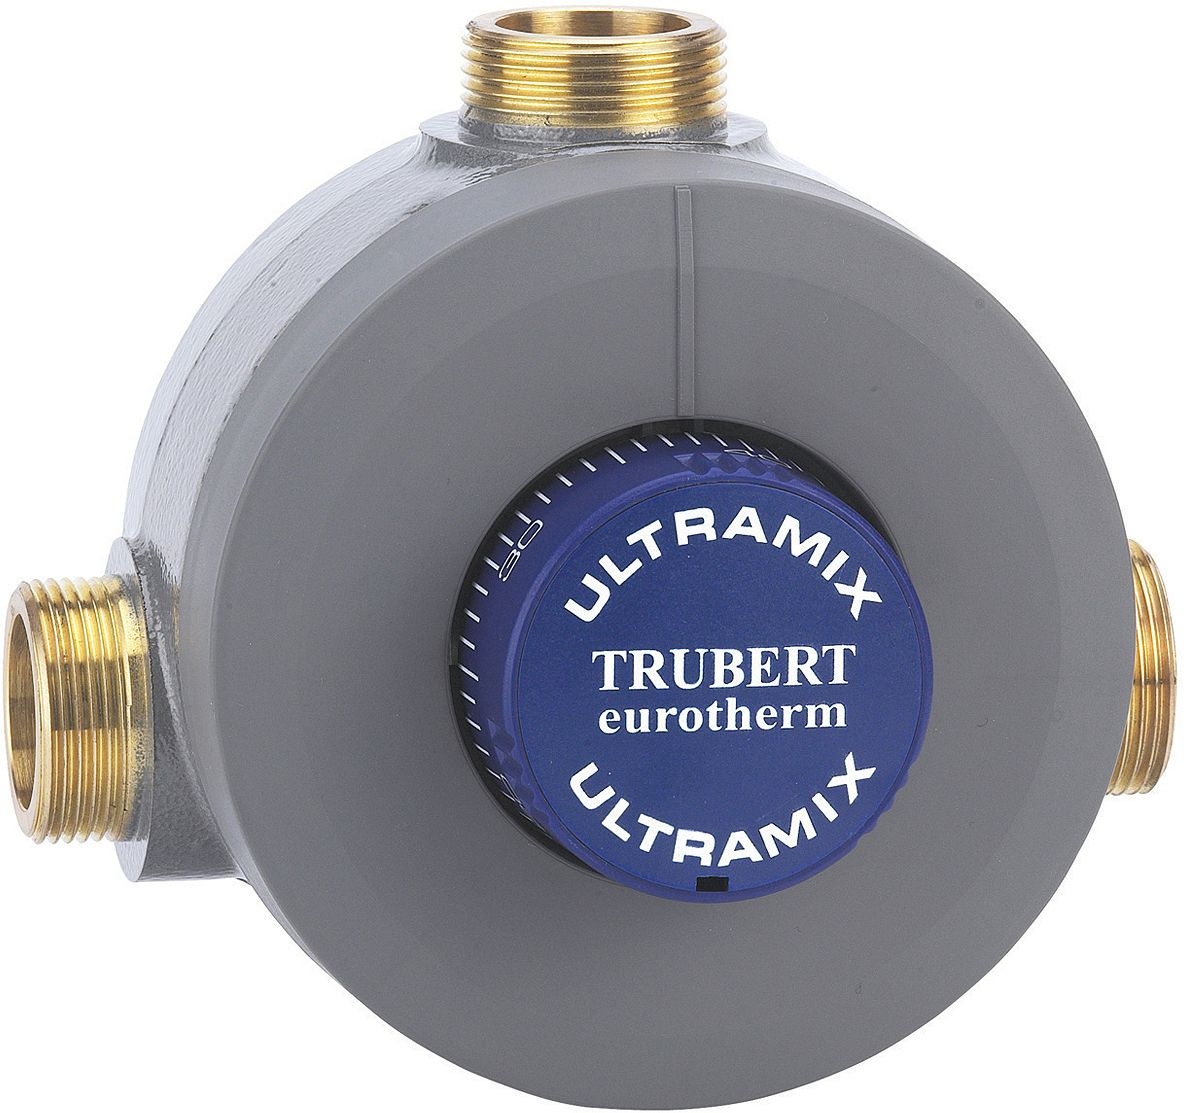 "THERM.KRAAN EUROTH.WATTS 3/4""56L/M EPOXY"